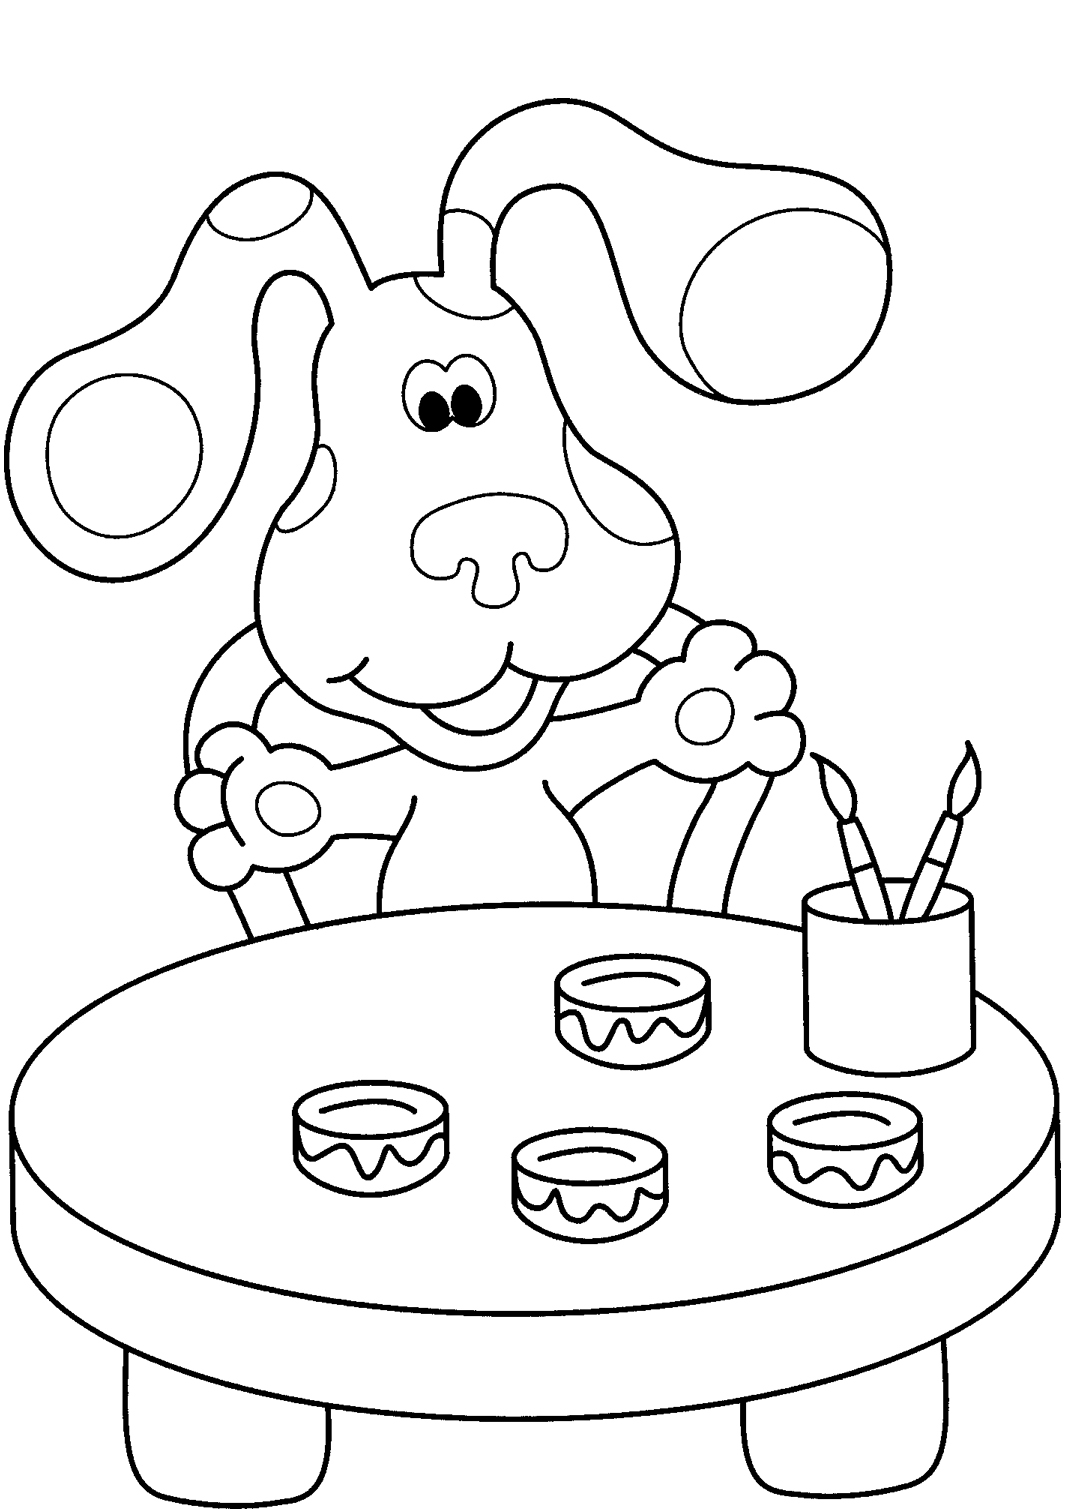 kids coloring pages that - photo#39